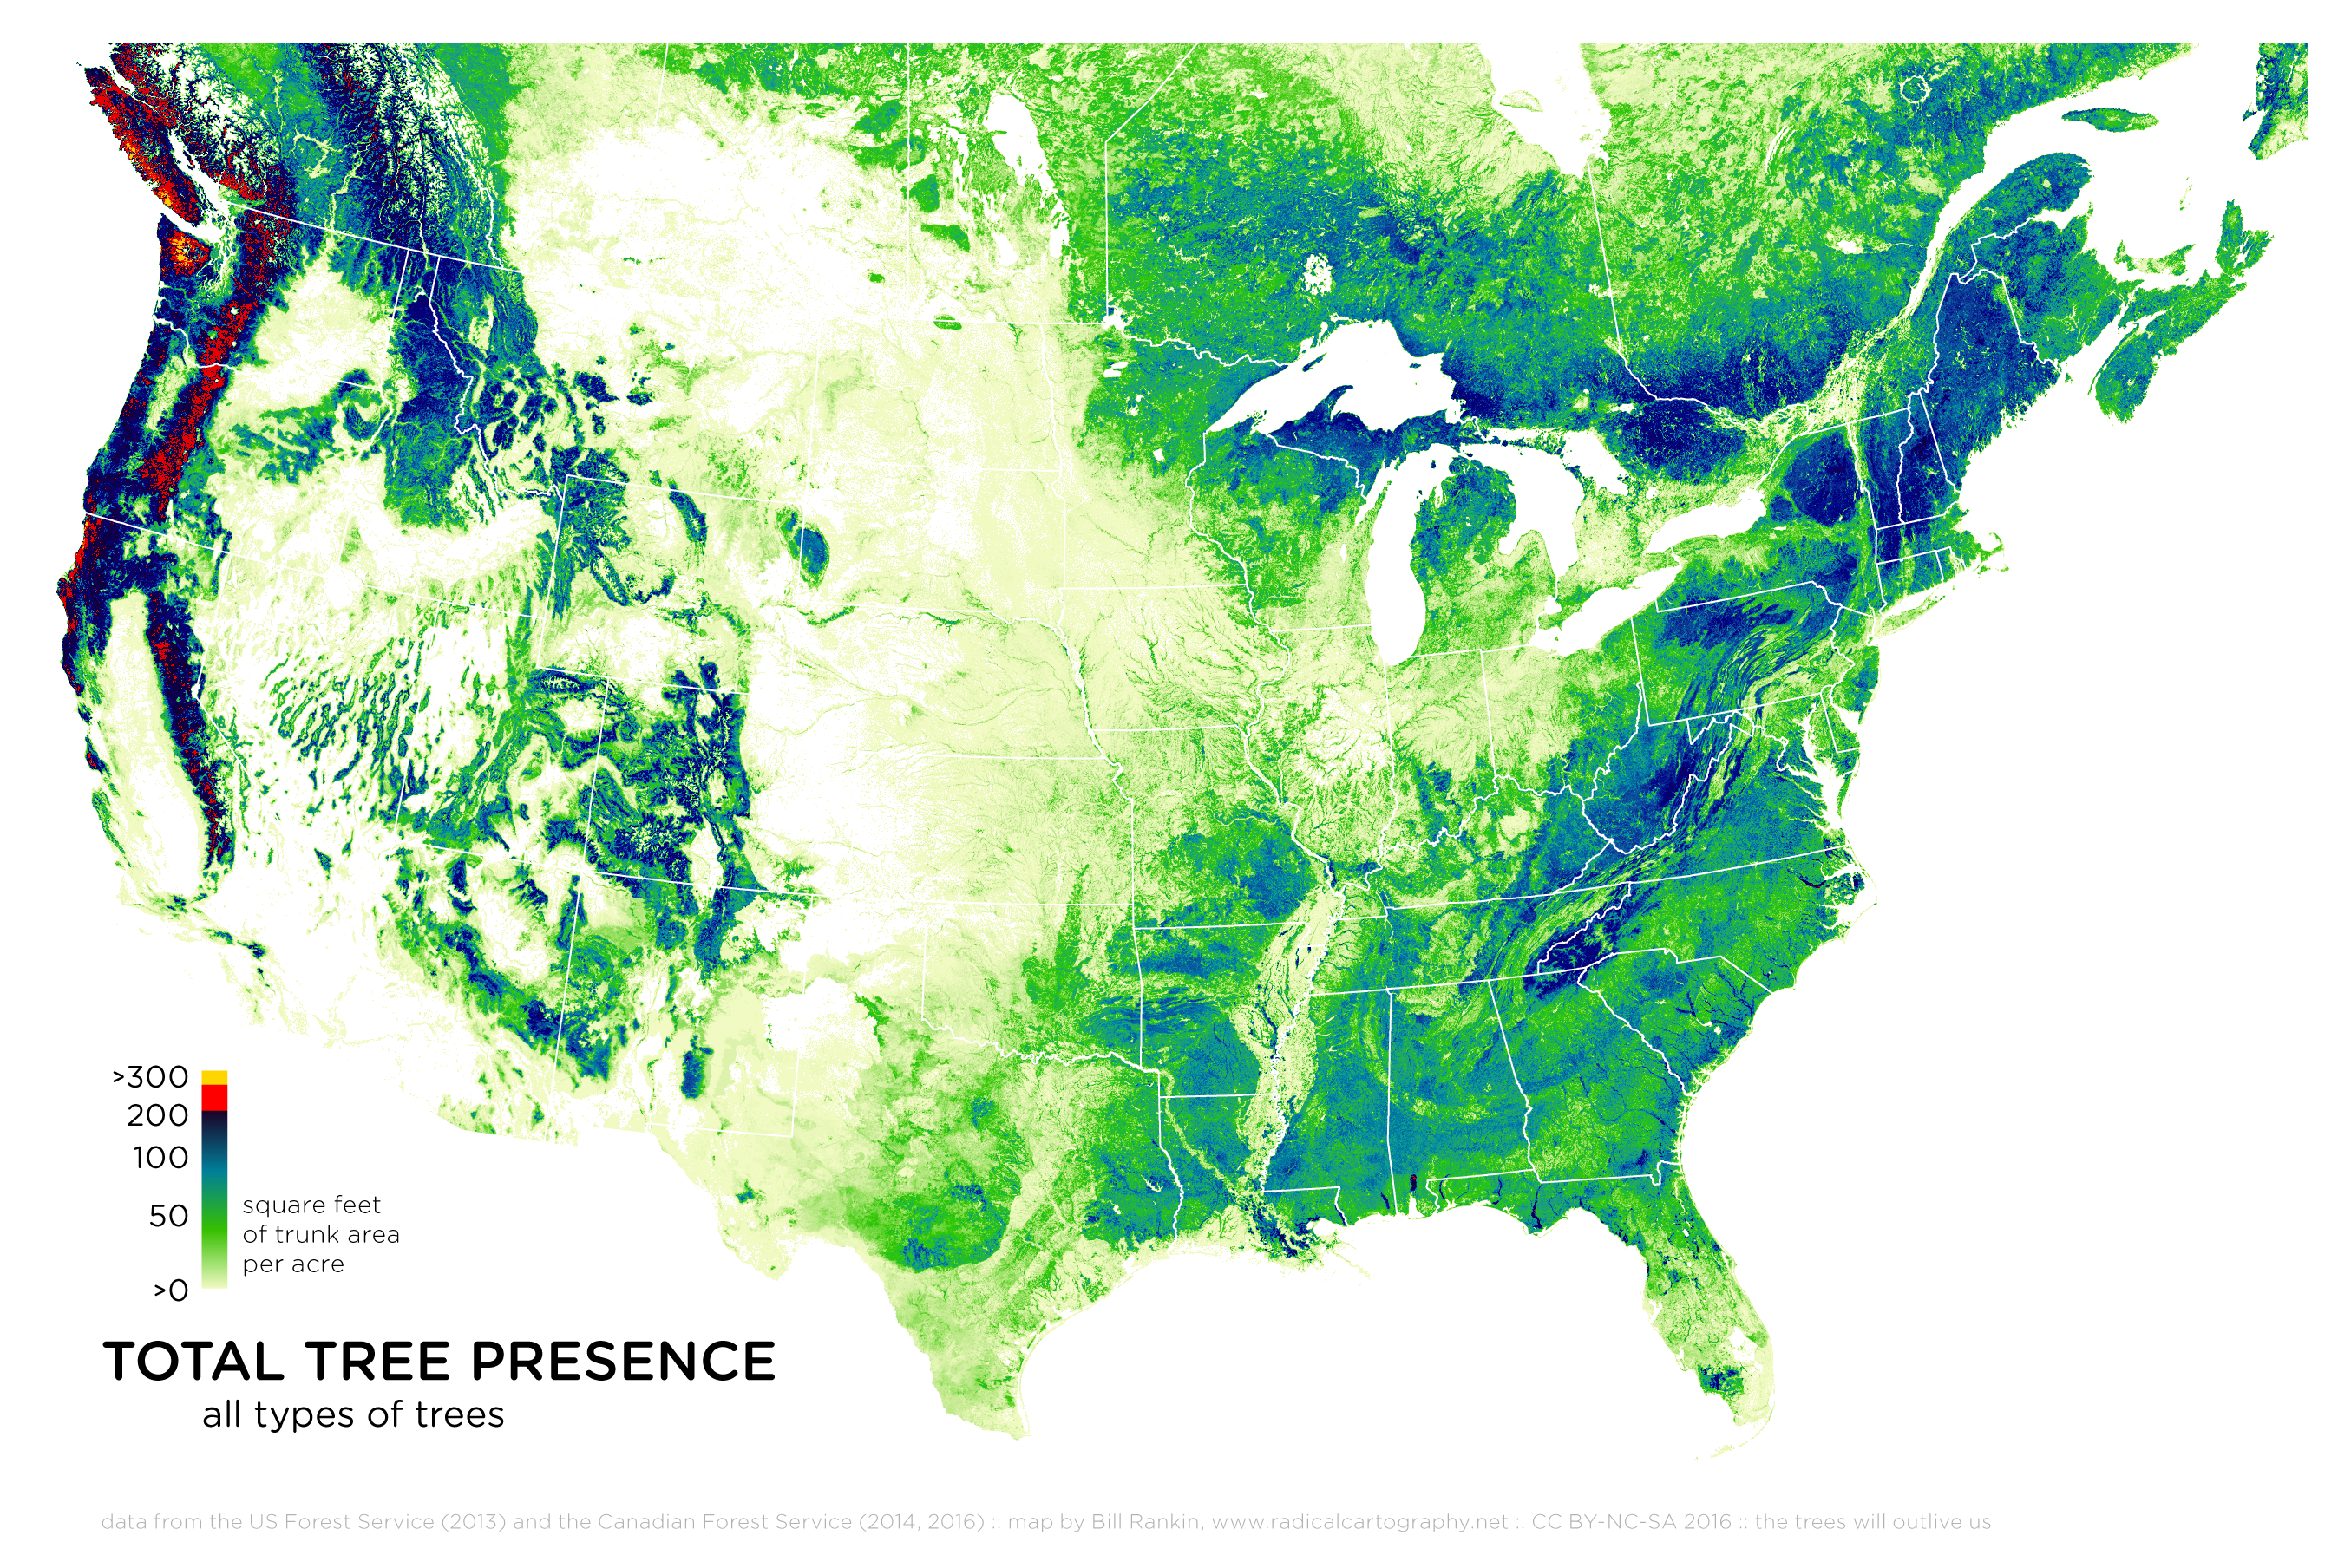 Radicalcartography - Map of us forest types